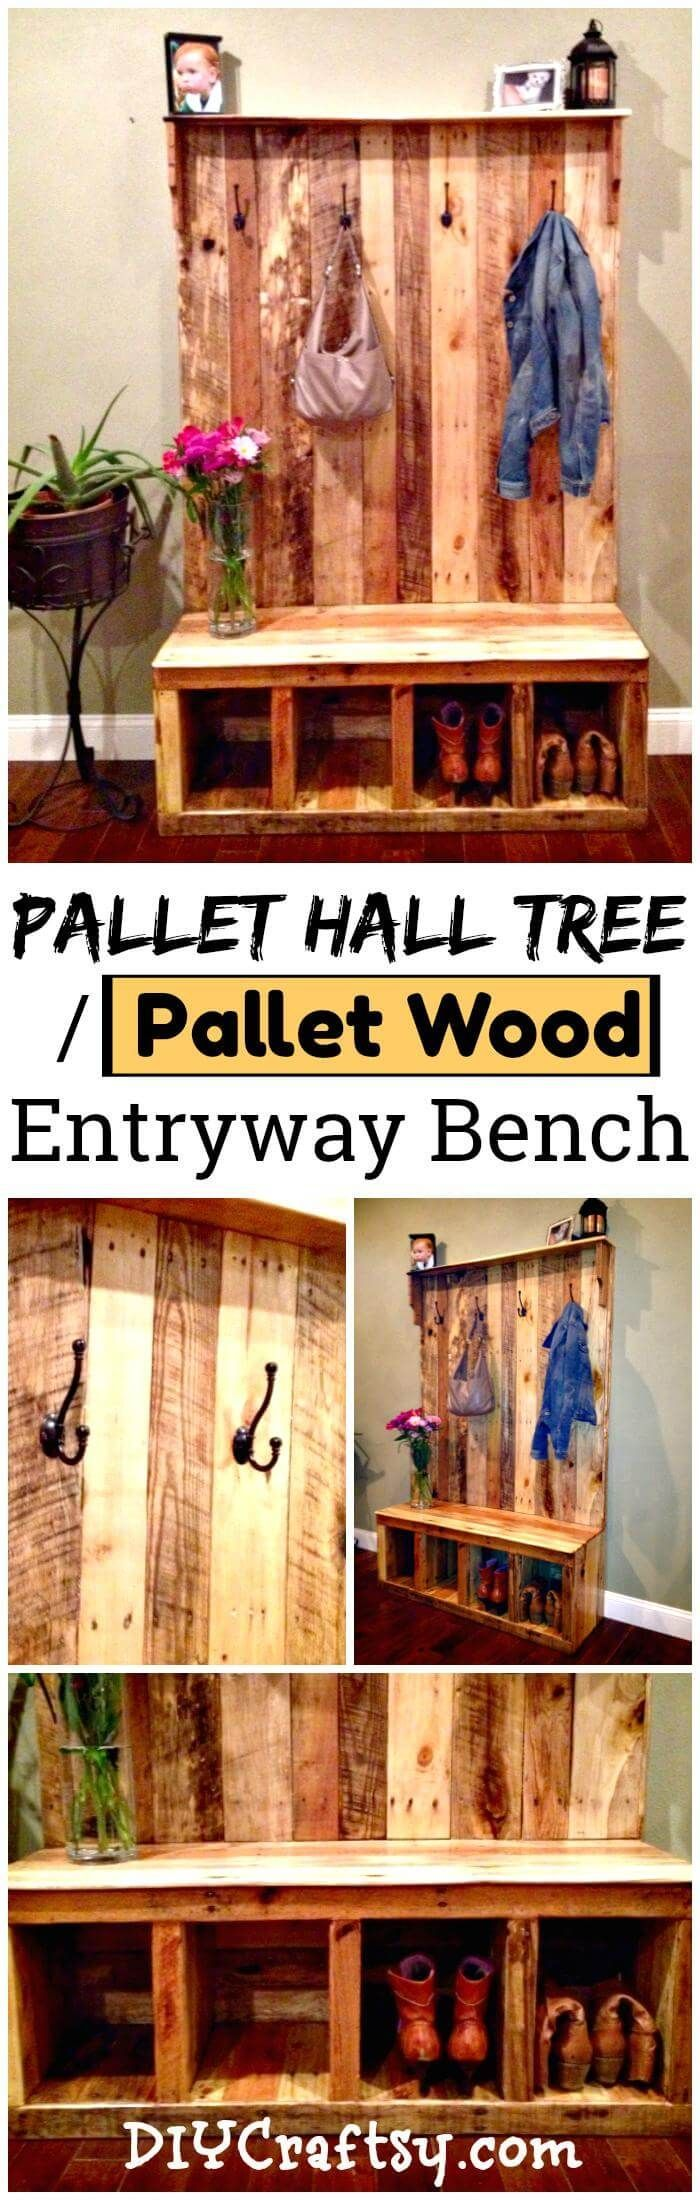 DIY Your Own Pallet Hall Tree or Pallet Wood Entryway Bench #woodworkingbench